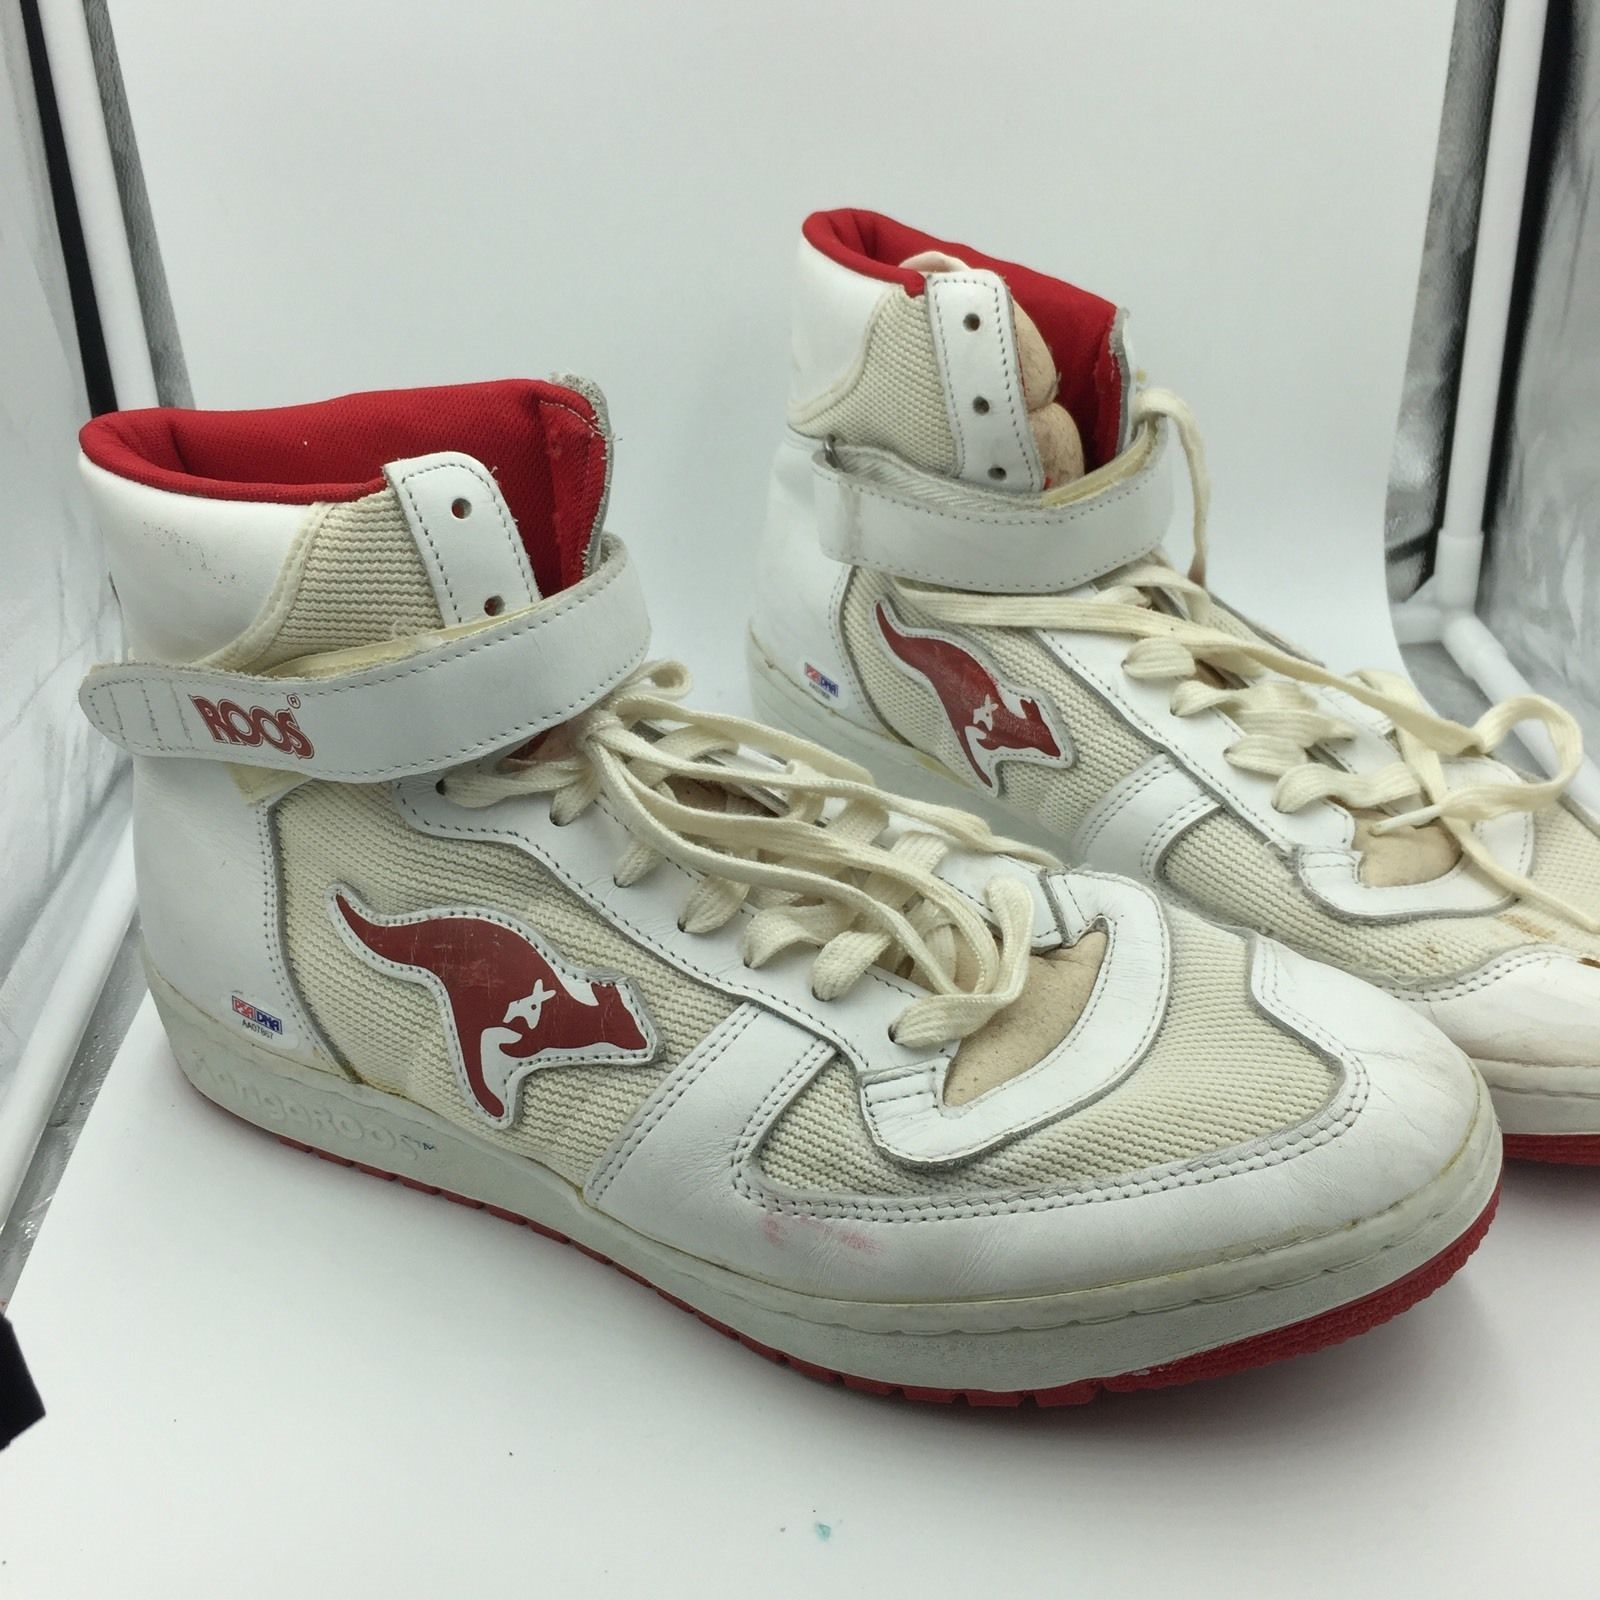 764d630bbc42 1980 s Clyde Drexler Signed Game Used Sneakers Shoes Pair With PSA DNA COA